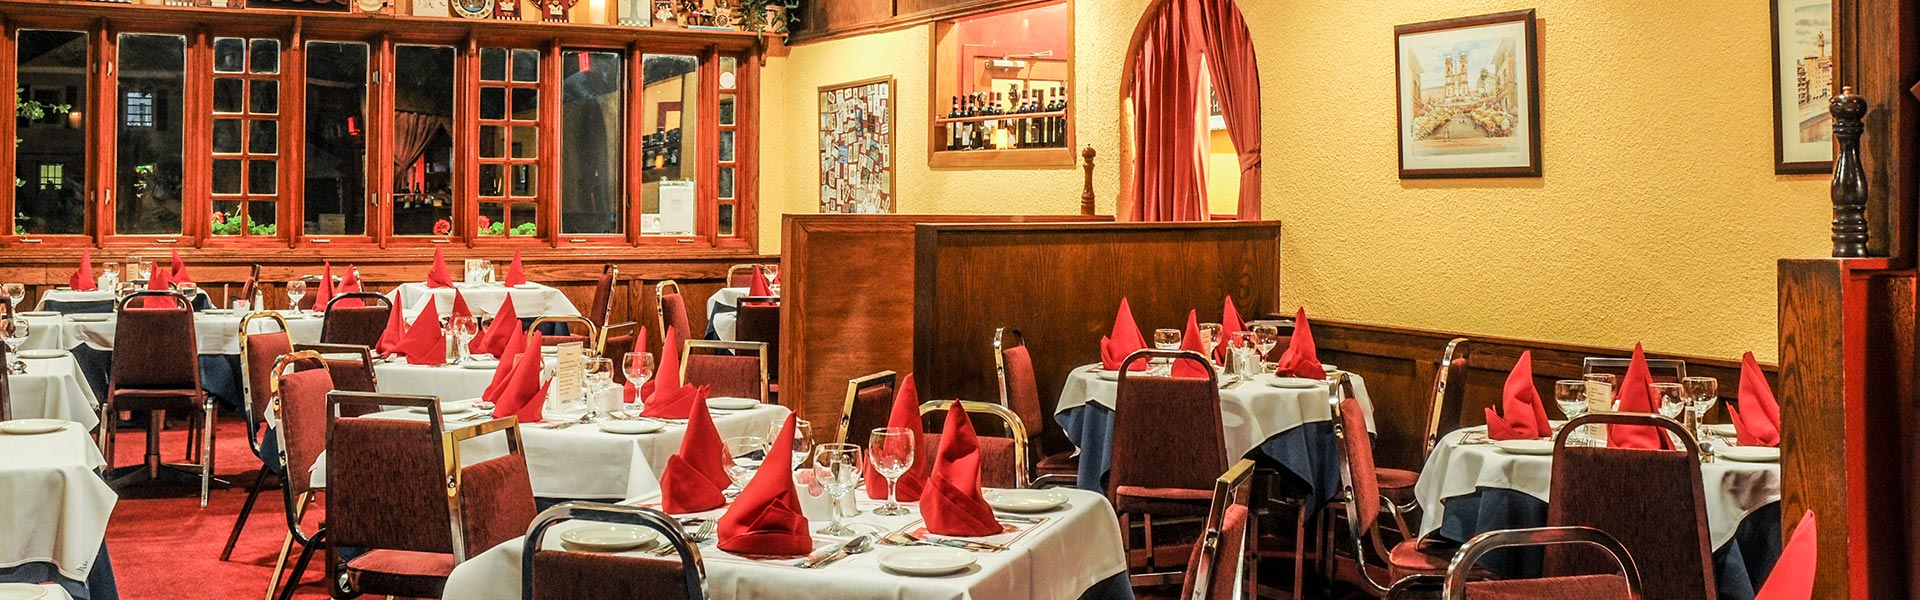 Etobicoke Restaurants With Private Dining Rooms